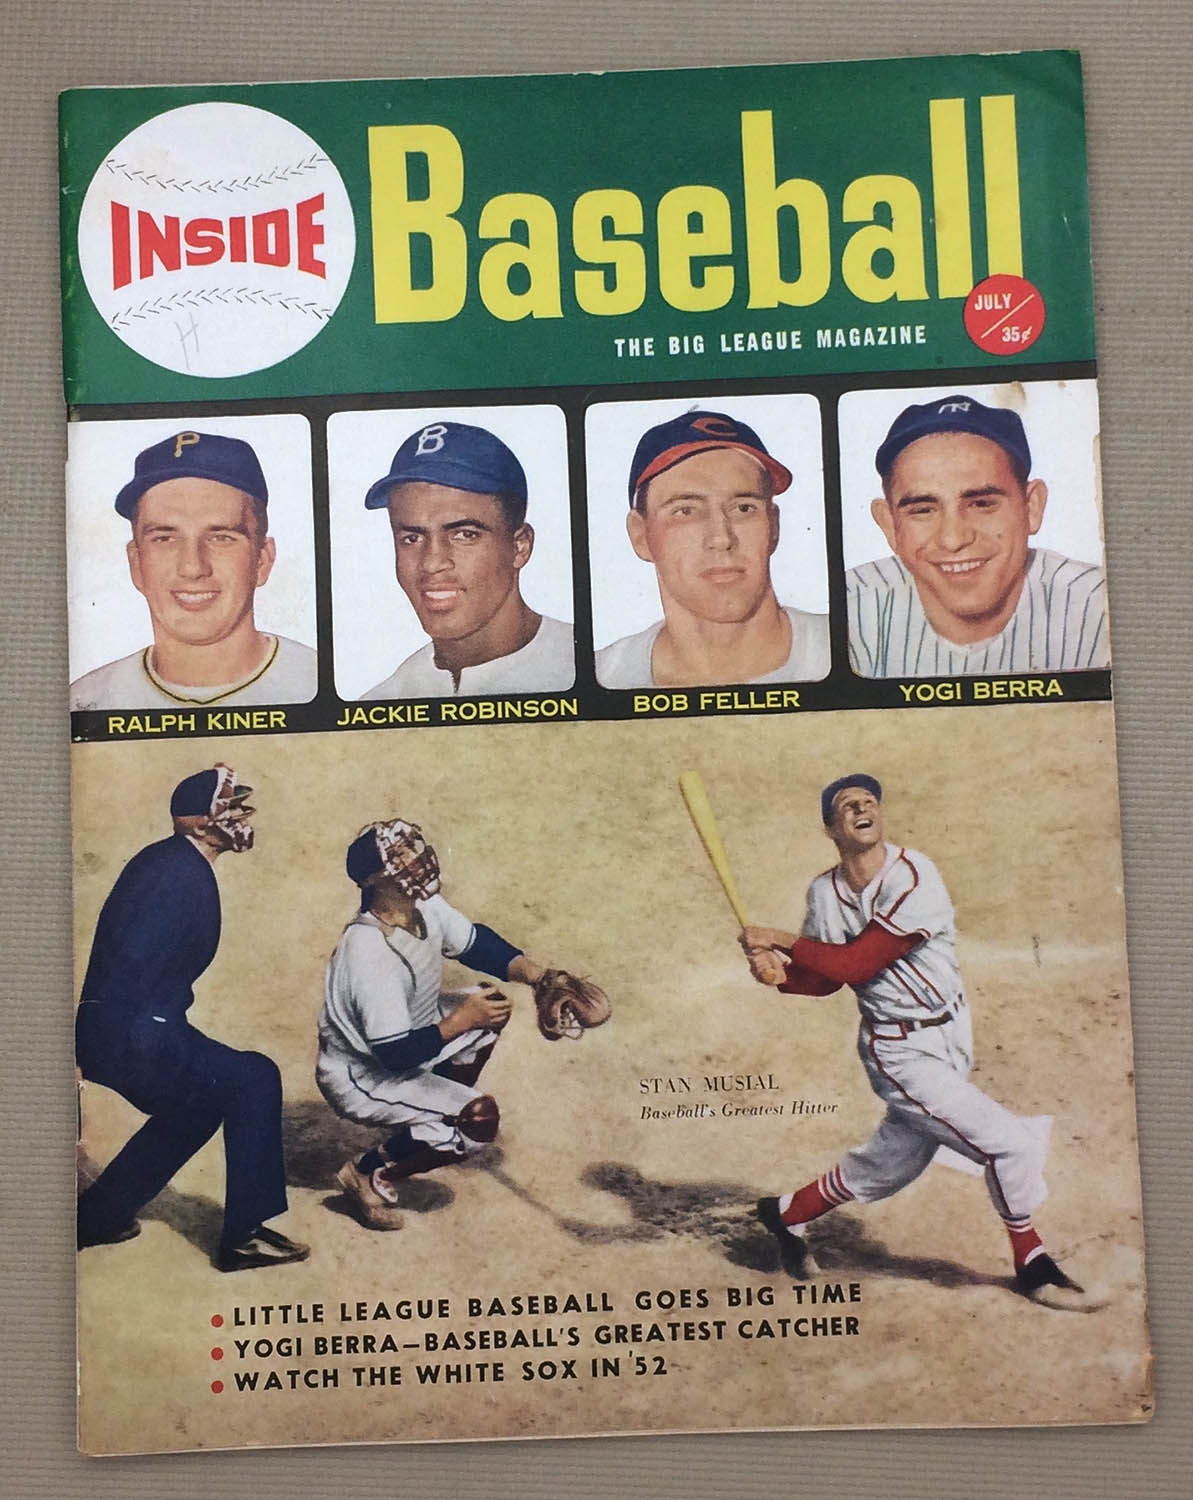 Inside baseball July 1952 Issue